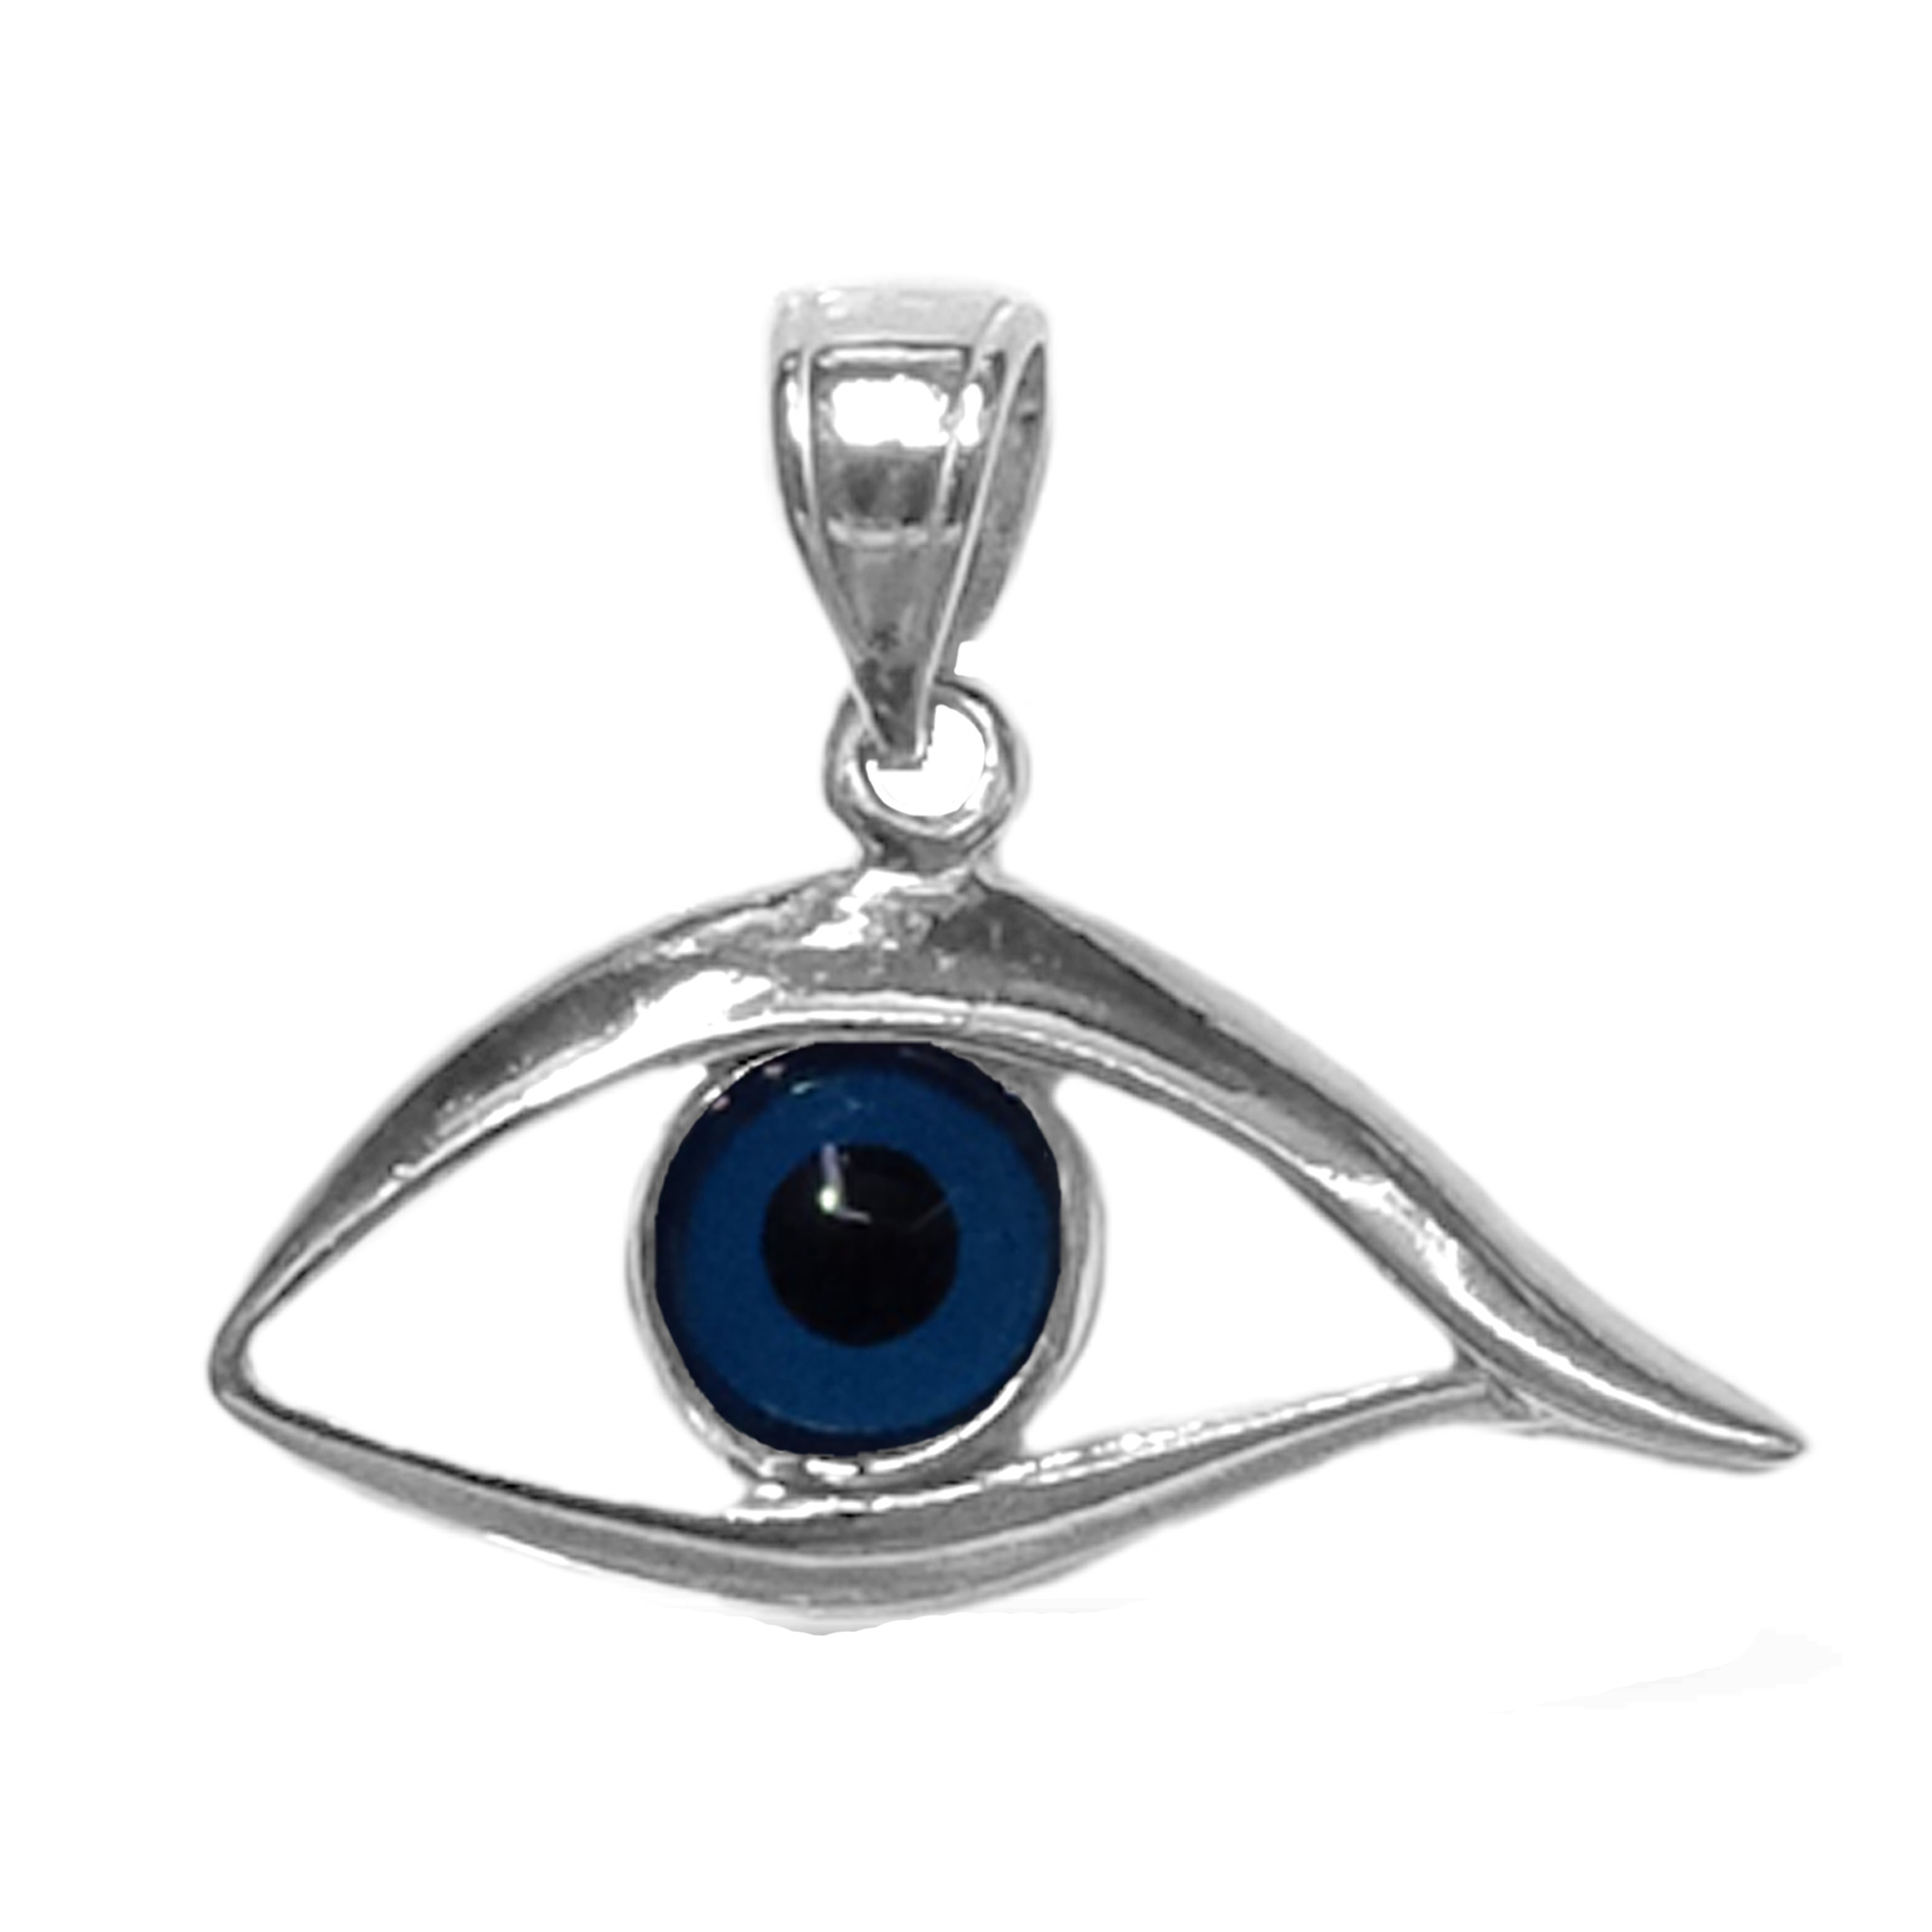 Sterling Silver Evil Blue Eye Pendant Charm, 25 x 20mm Inspired from the of Greek ancient jewelry era, this sterling silver charm features the Evil Eye motif, also known as Mati in greek, bordering a beautiful  glass Evil Eye. Measuring at 20mm x 25mm diameter, this greek evil eye is rhodium plated for better tarnish resistance.